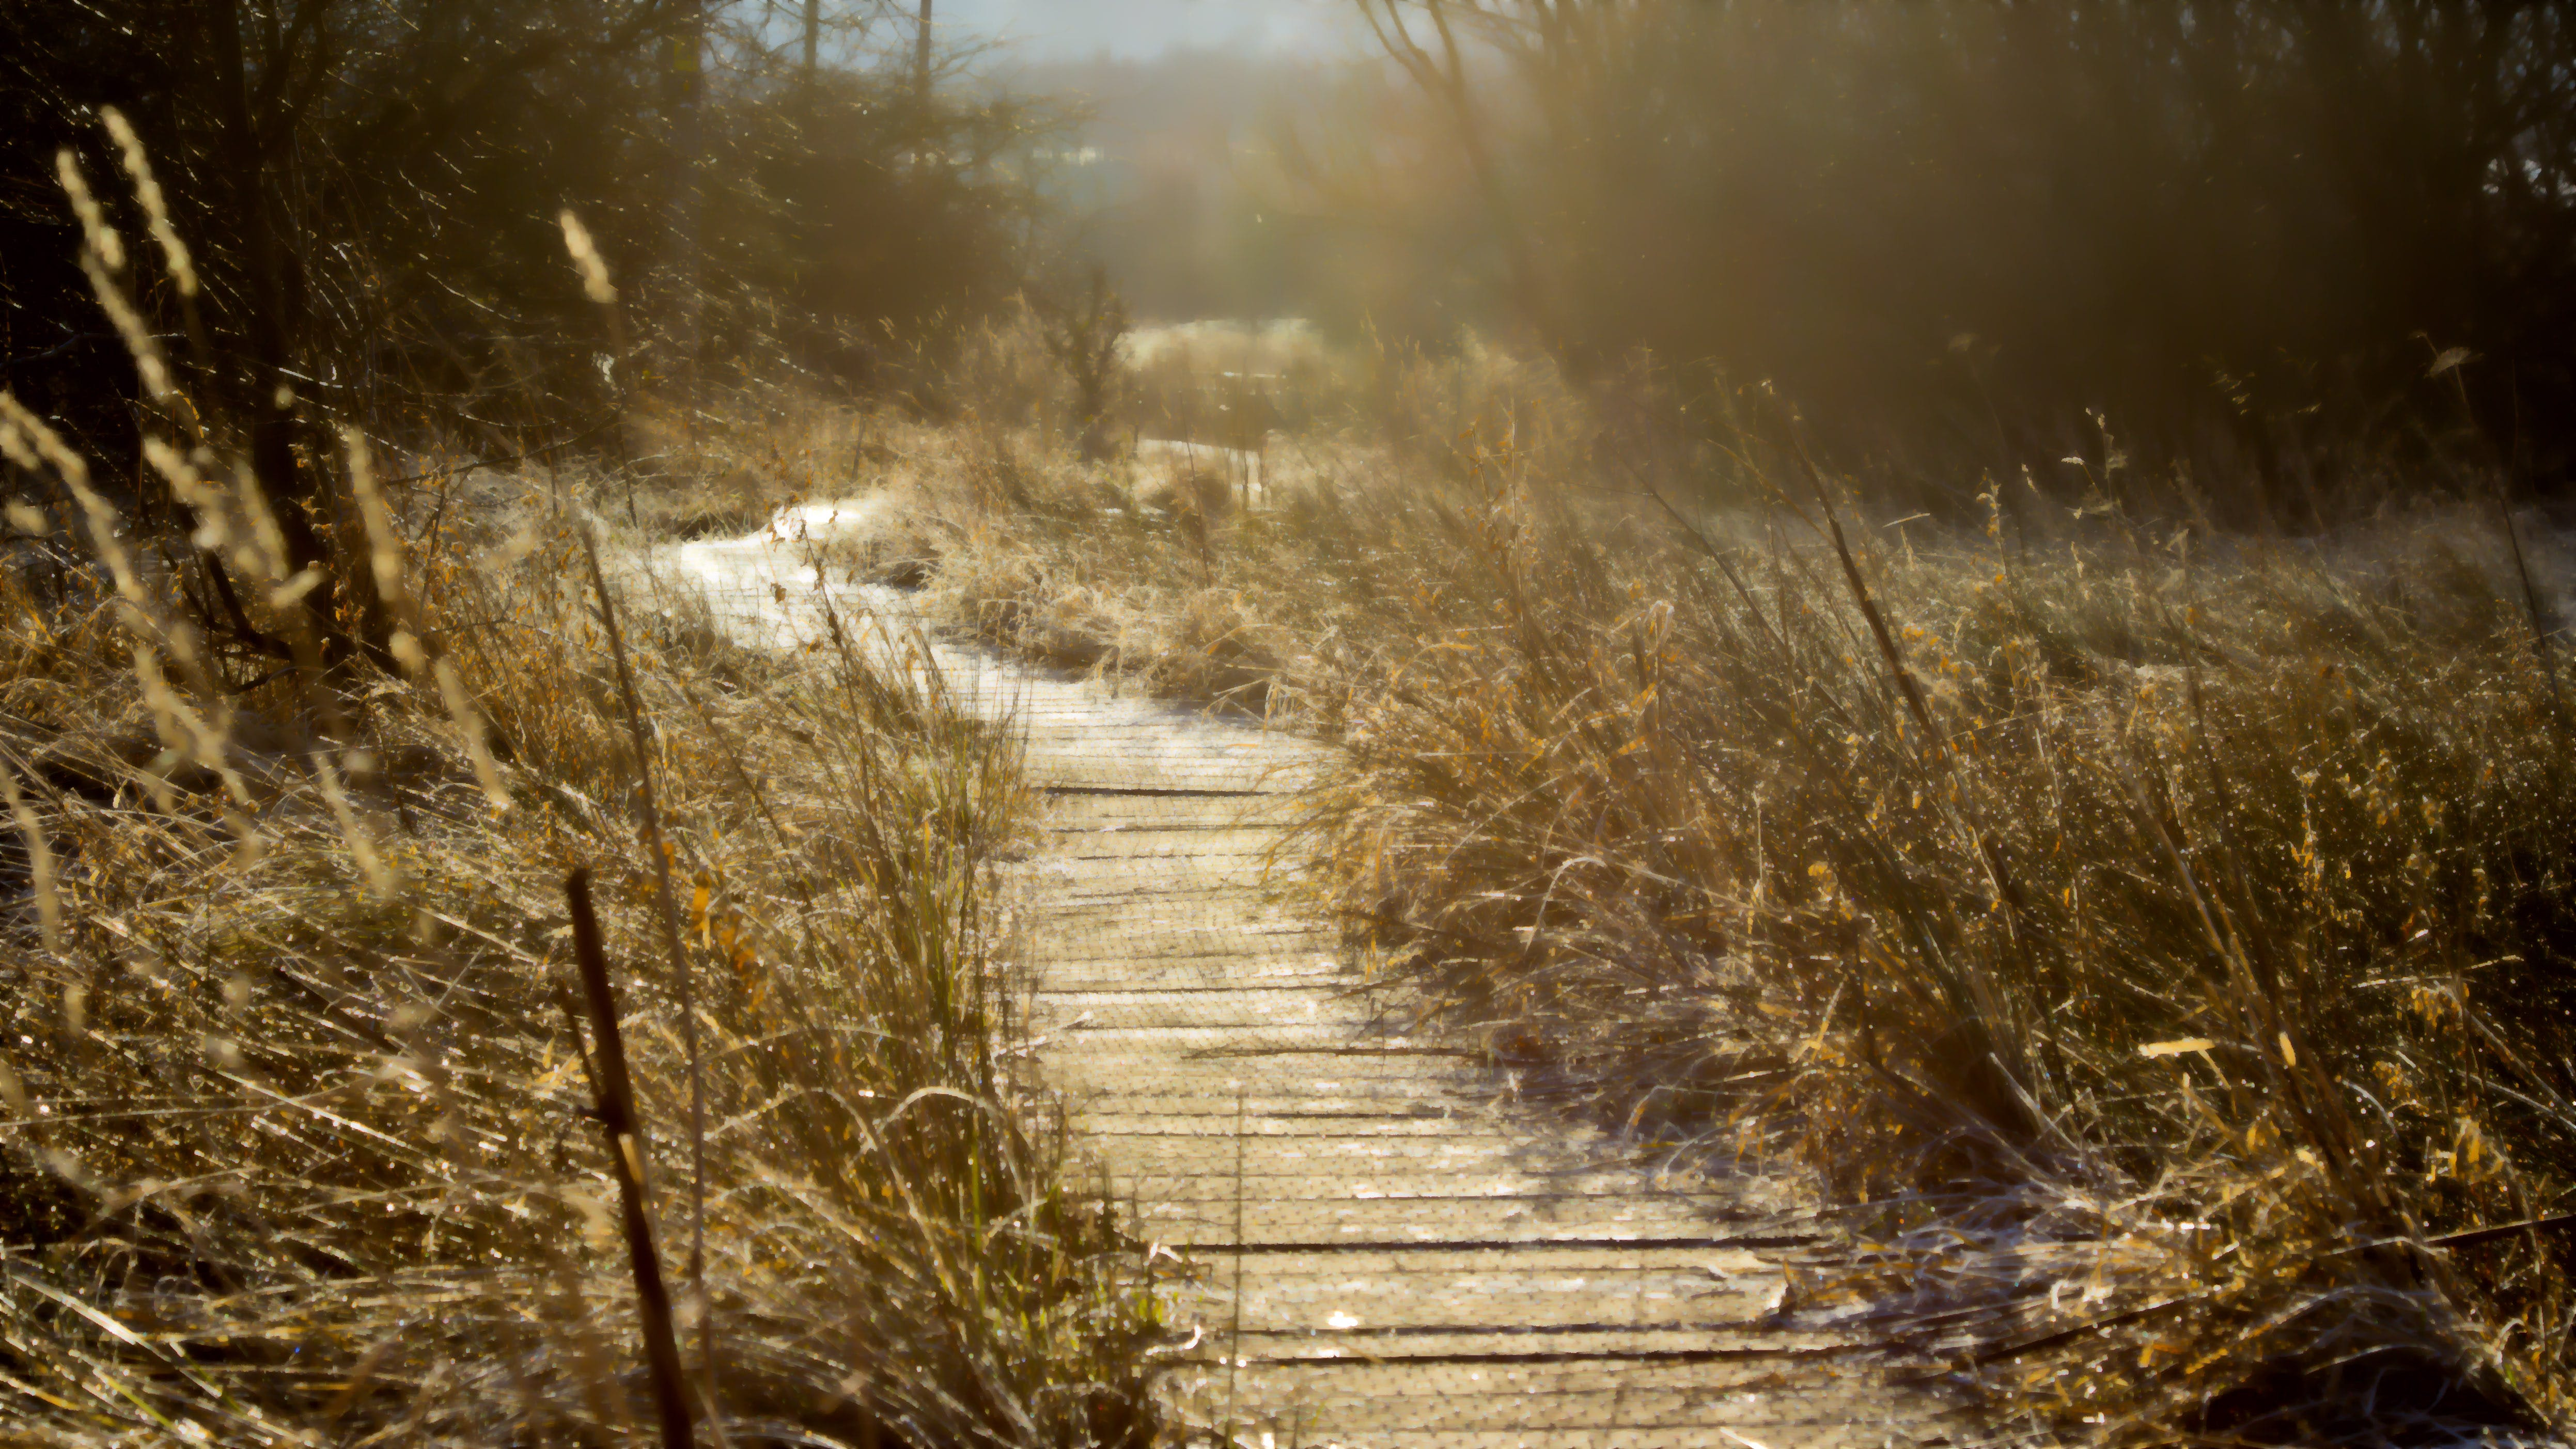 Free stock photo of Tandfield Wetlands